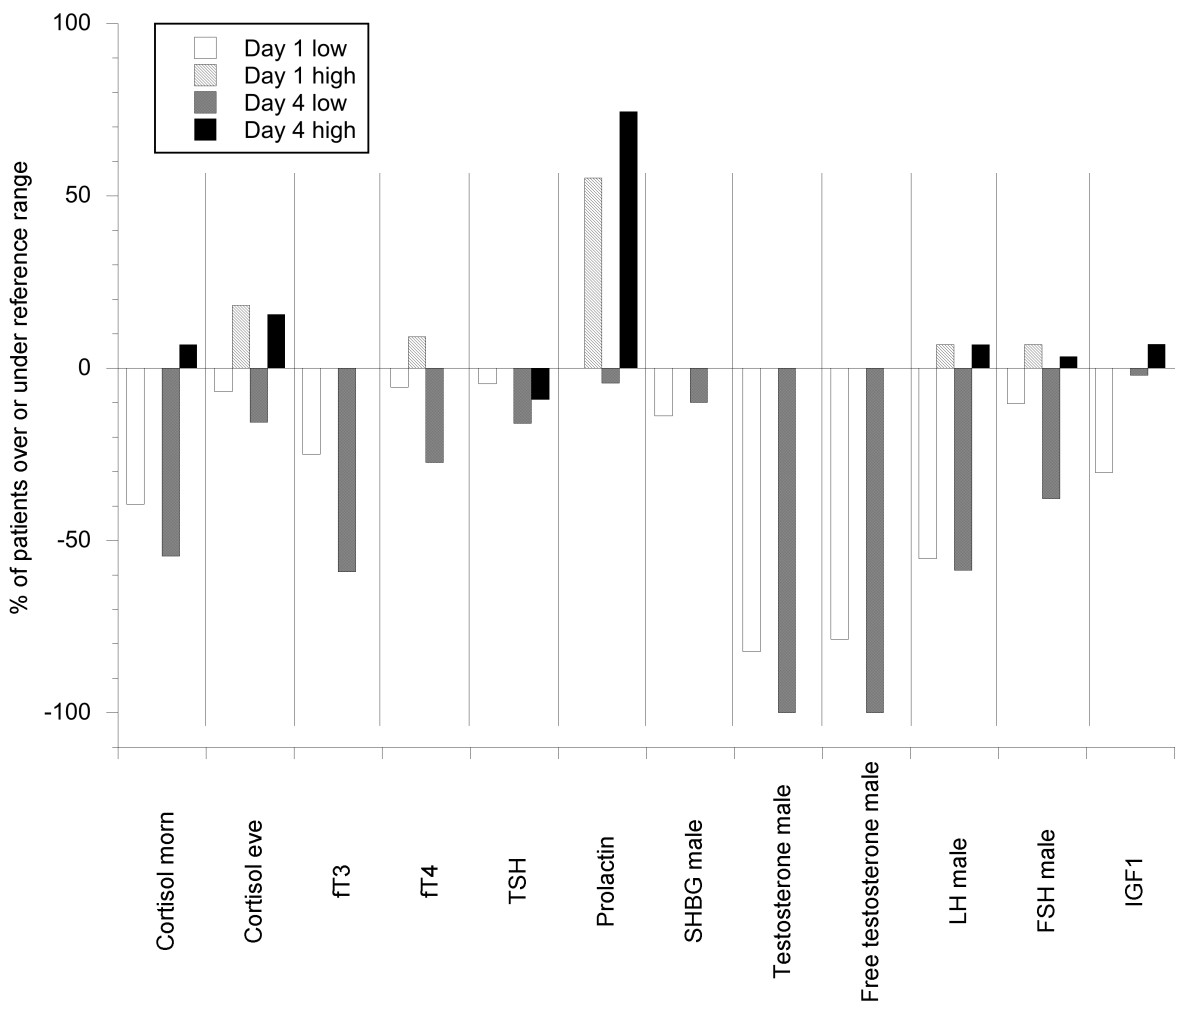 http://static-content.springer.com/image/art%3A10.1186%2F1757-7241-21-33/MediaObjects/13049_2012_Article_567_Fig1_HTML.jpg